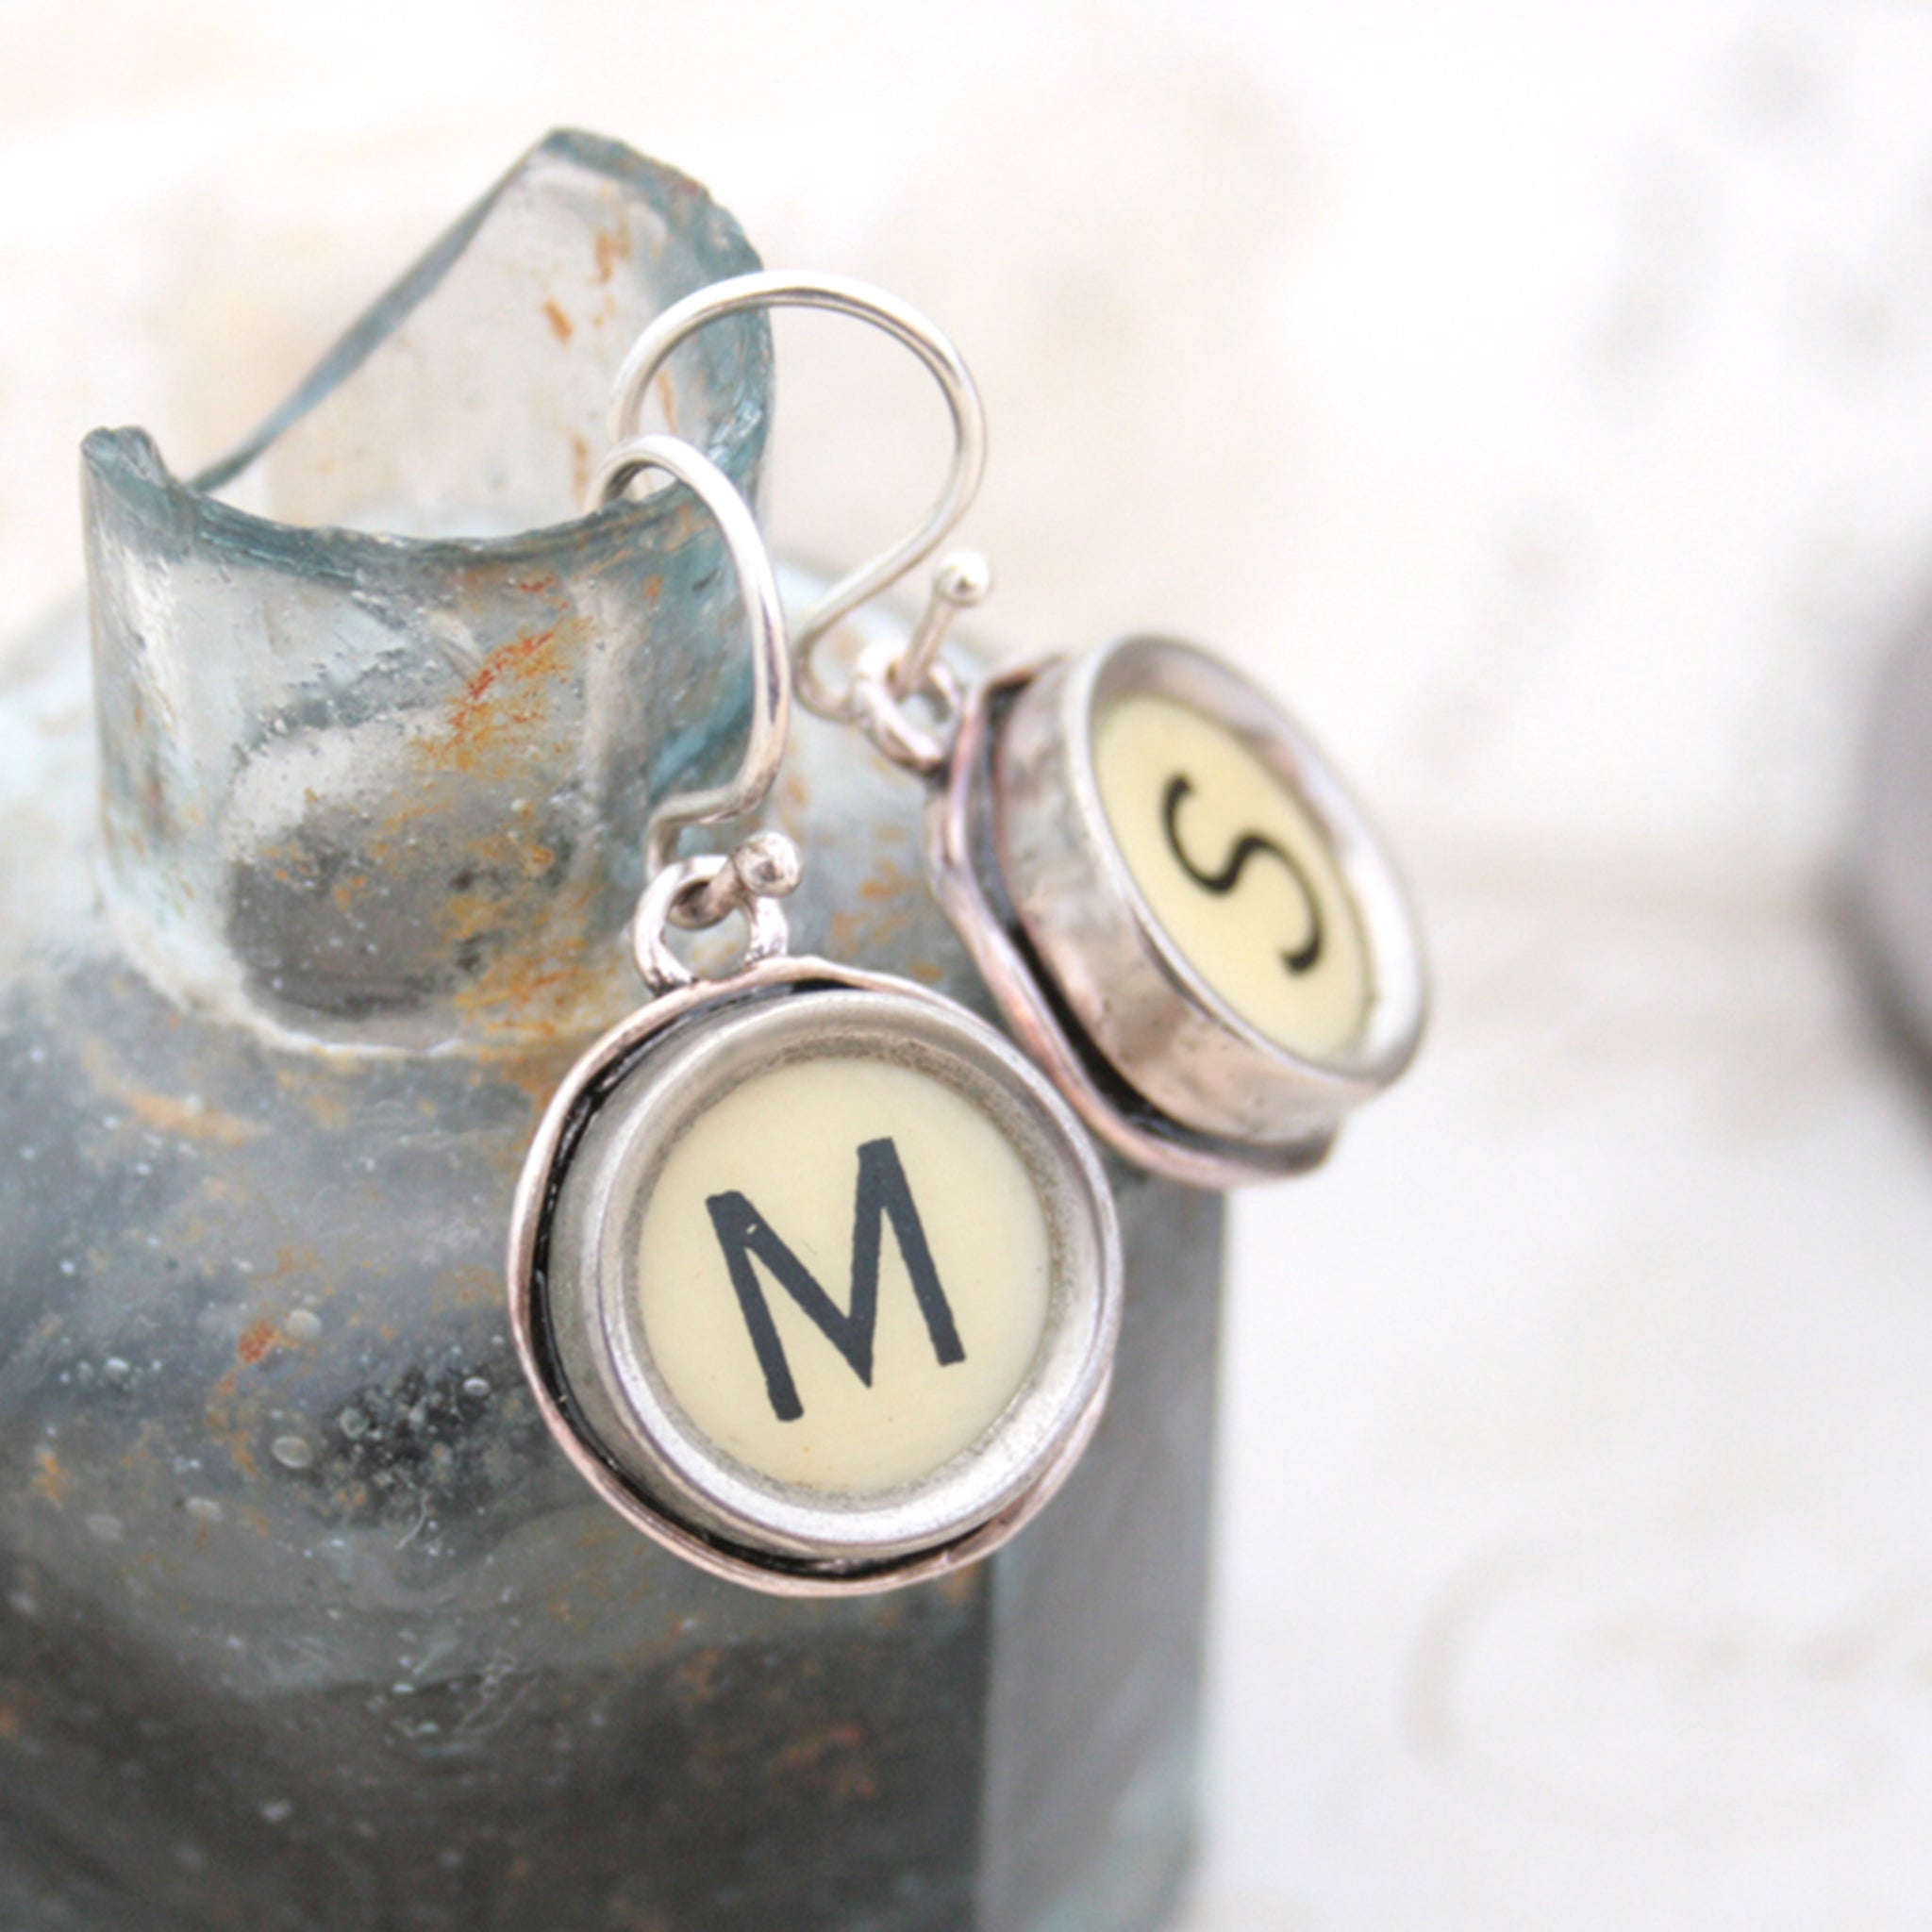 M and S Ivory Typewriter keys turned into initial earrings hanging on the edge of inkwell